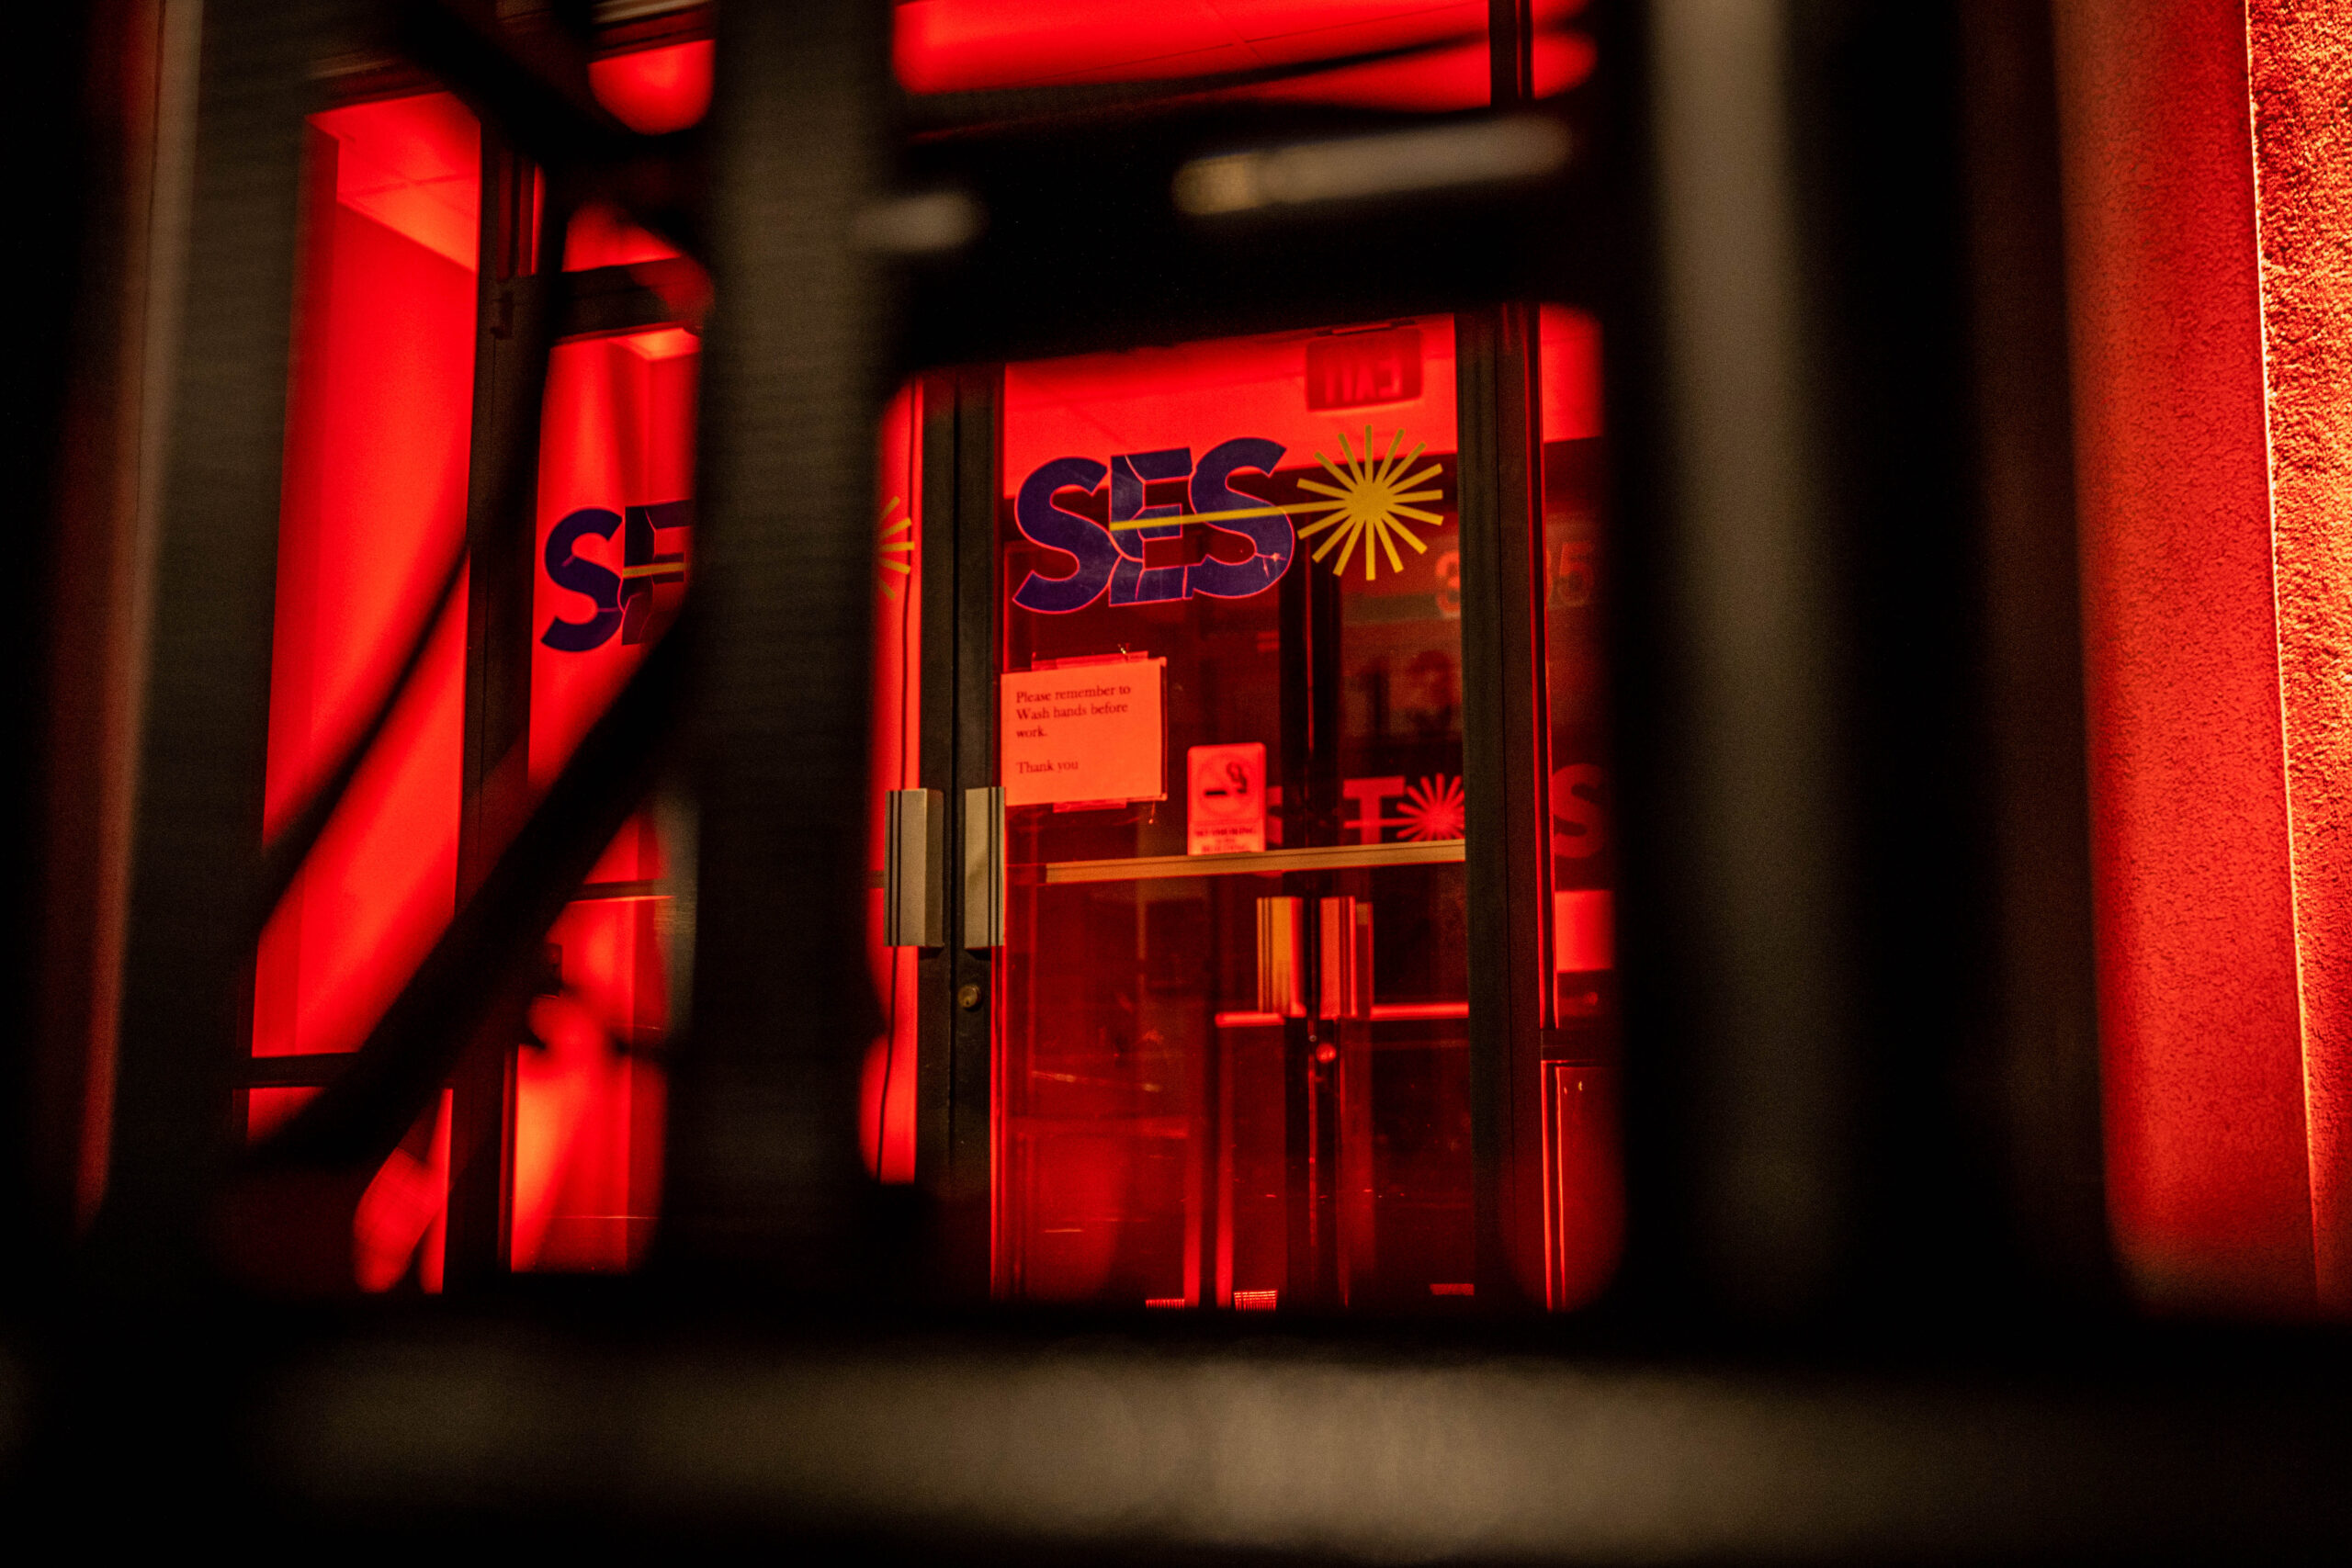 Dozens of Winston-Salem buildings lit up in red to support struggling entertainment industry